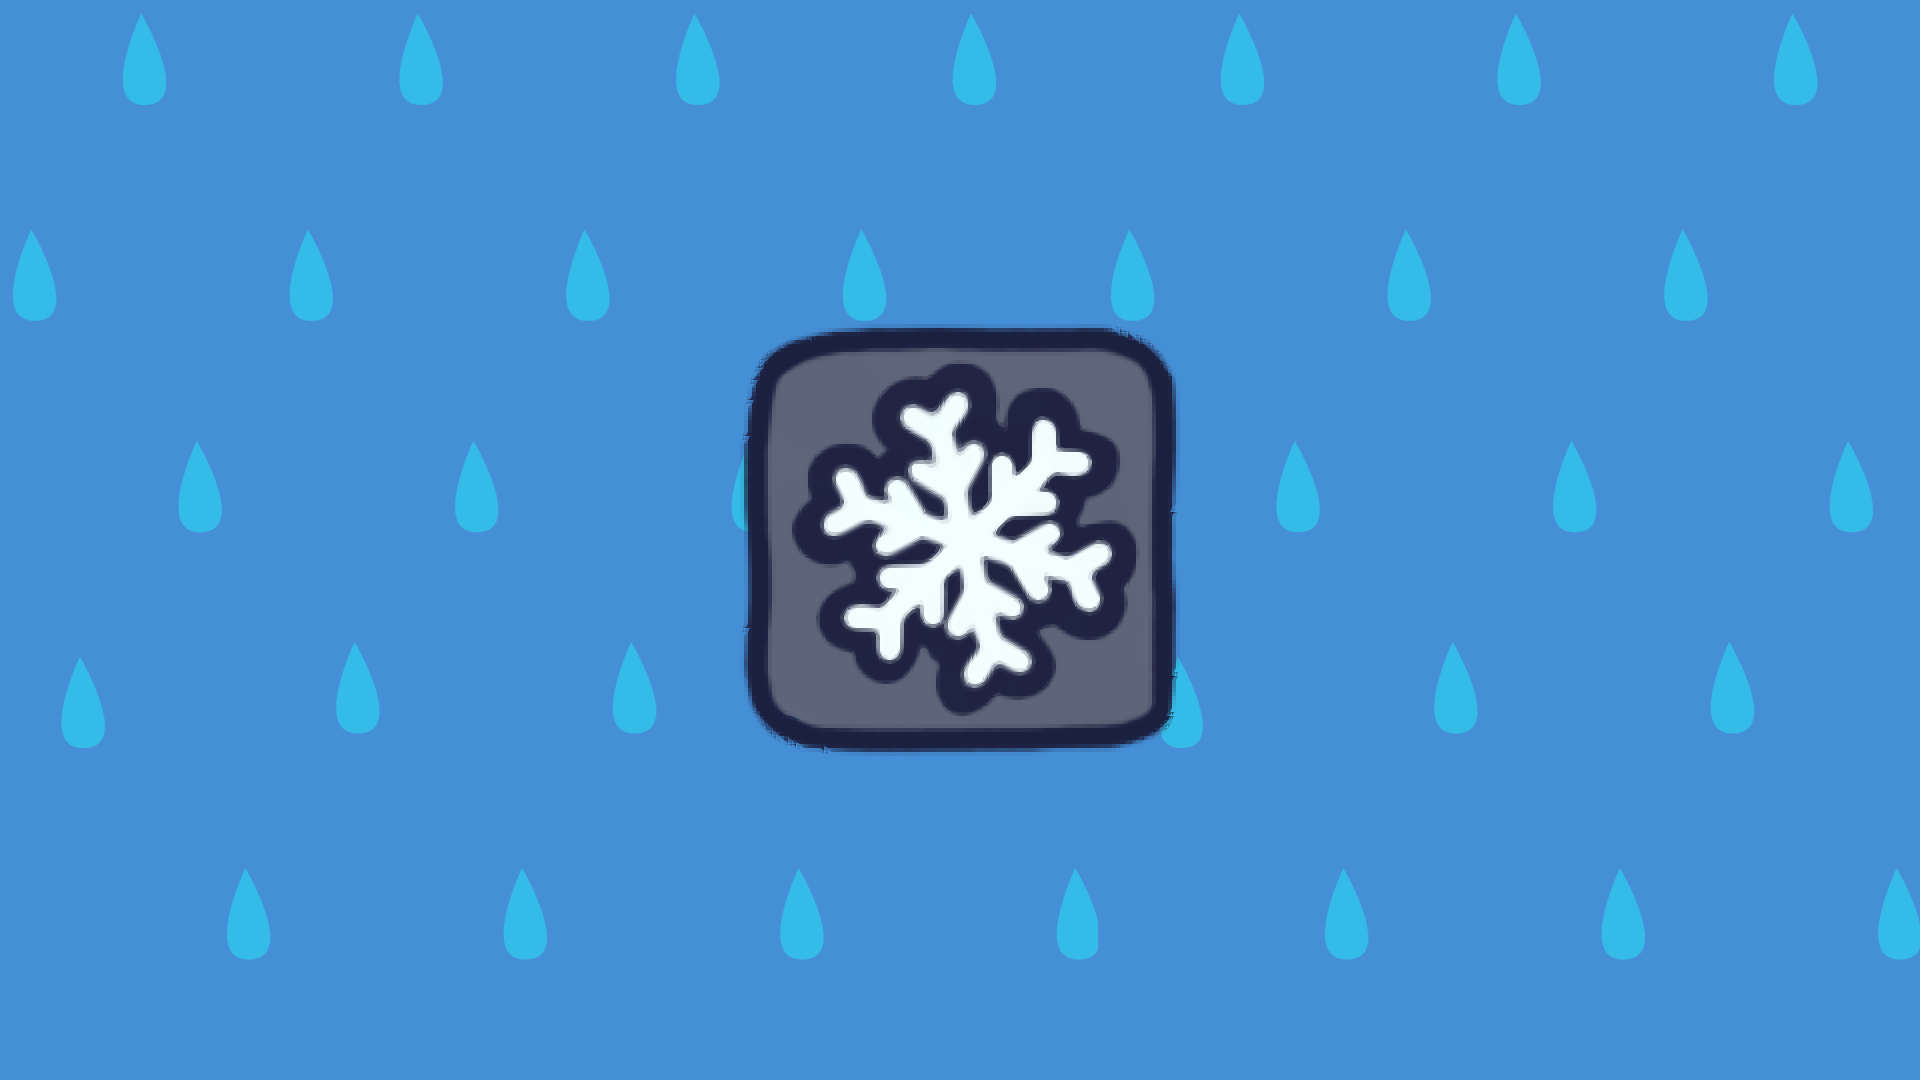 Icon for Chilly!